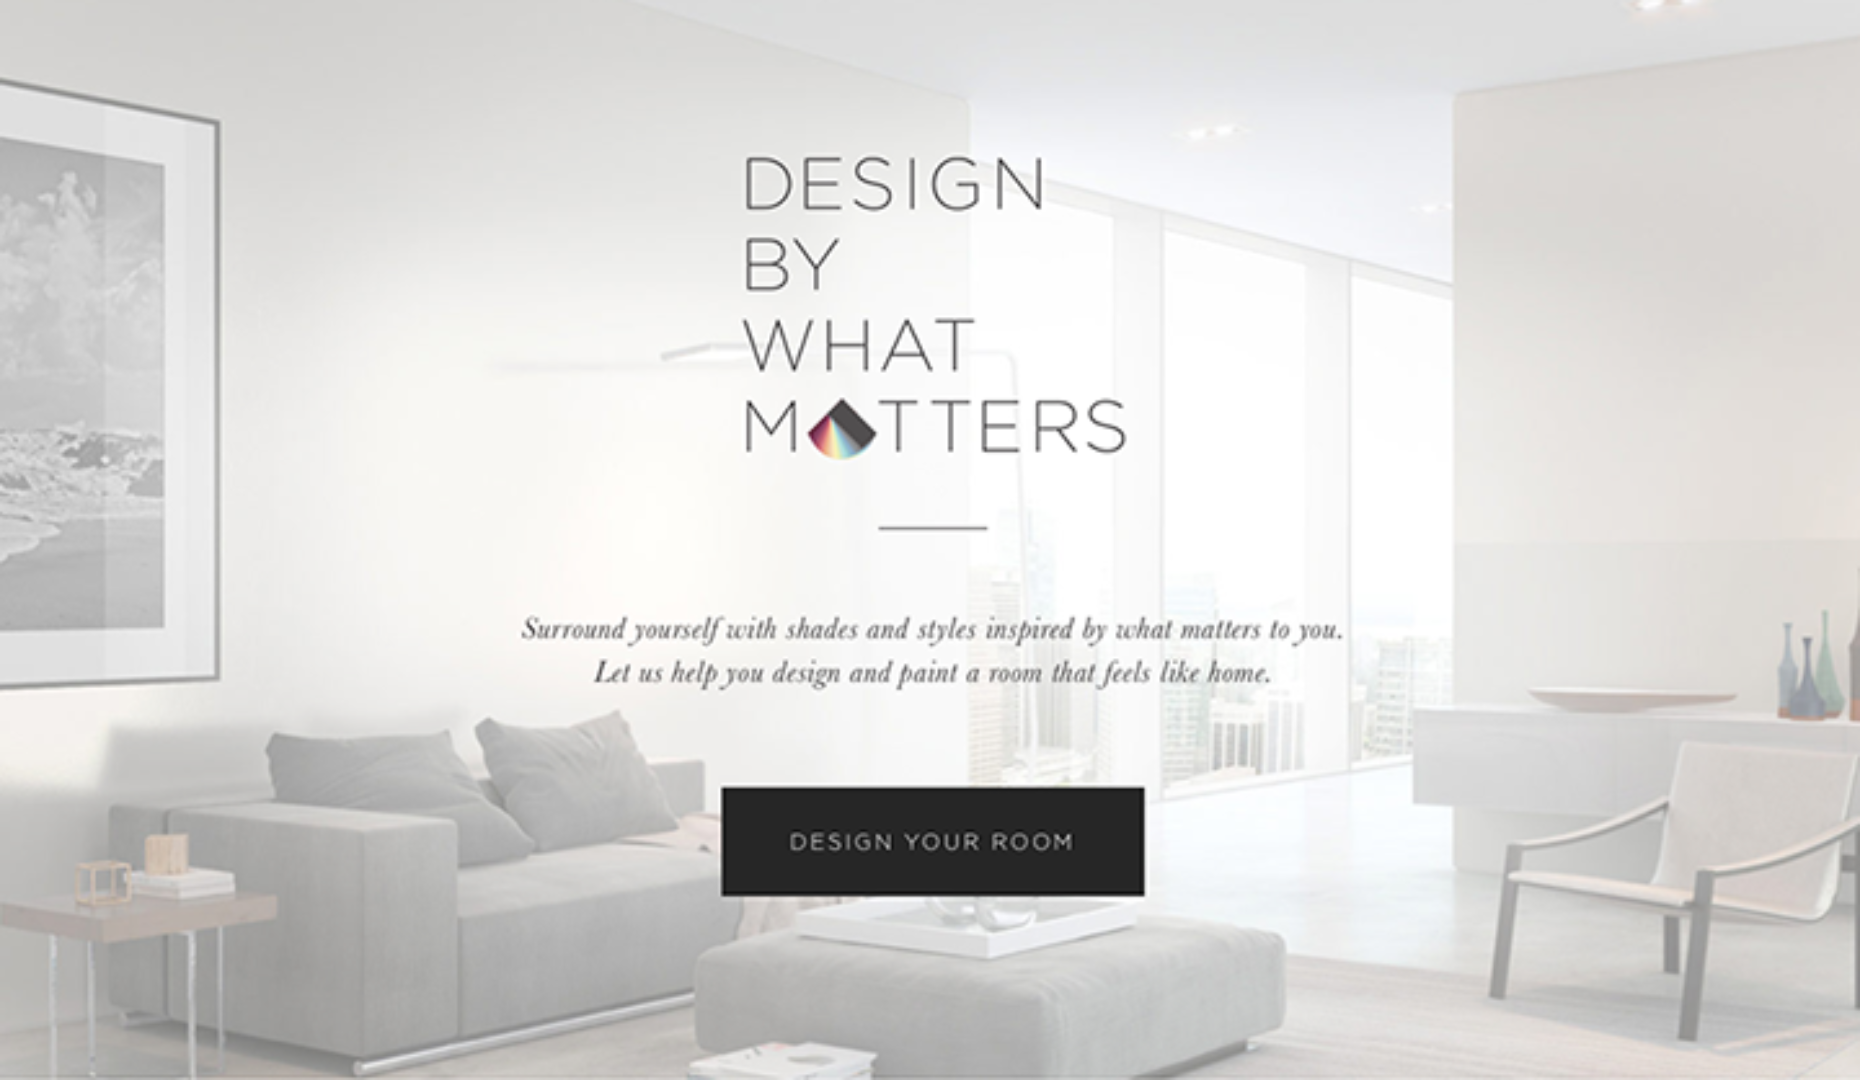 FWA Site And Mobile Of The Day: Design By What Matters